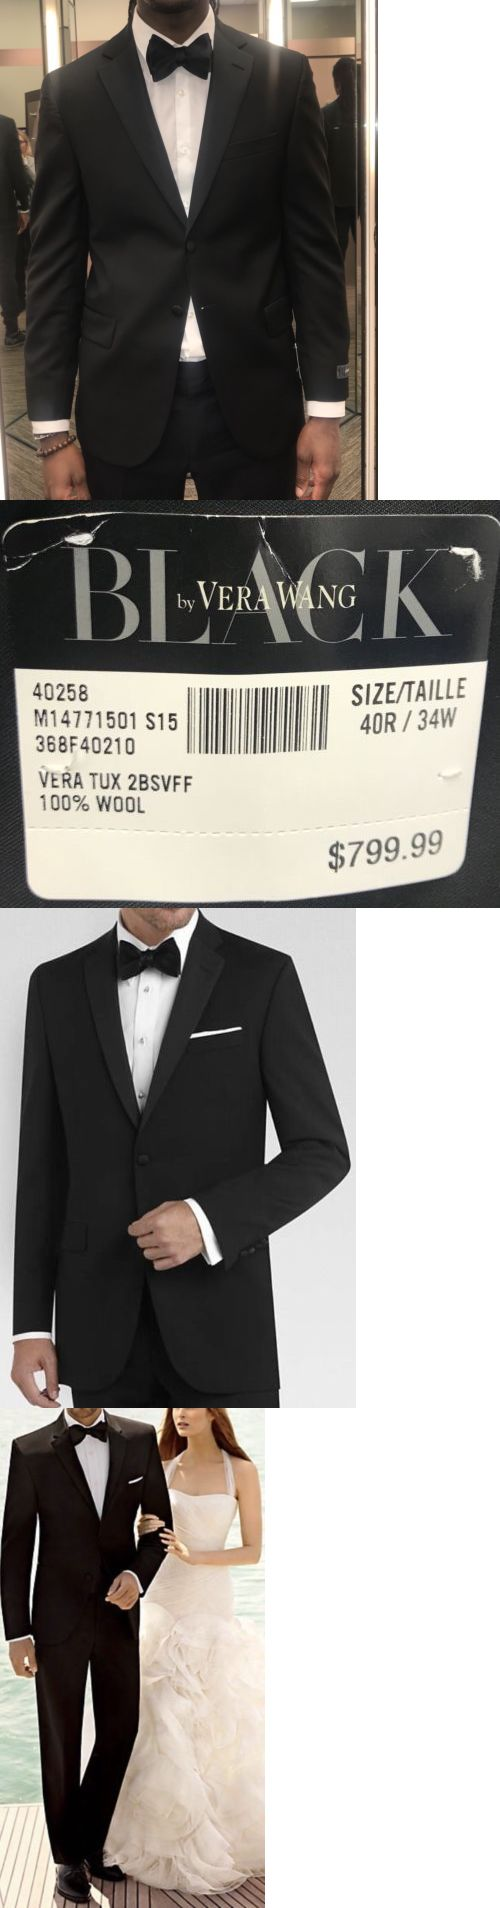 b655d38847a Tuxedo and Formal Jackets 105511: Black By Vera Wang Black Slim Fit Tuxedo  40R -> BUY IT NOW ONLY: $350 on eBay!